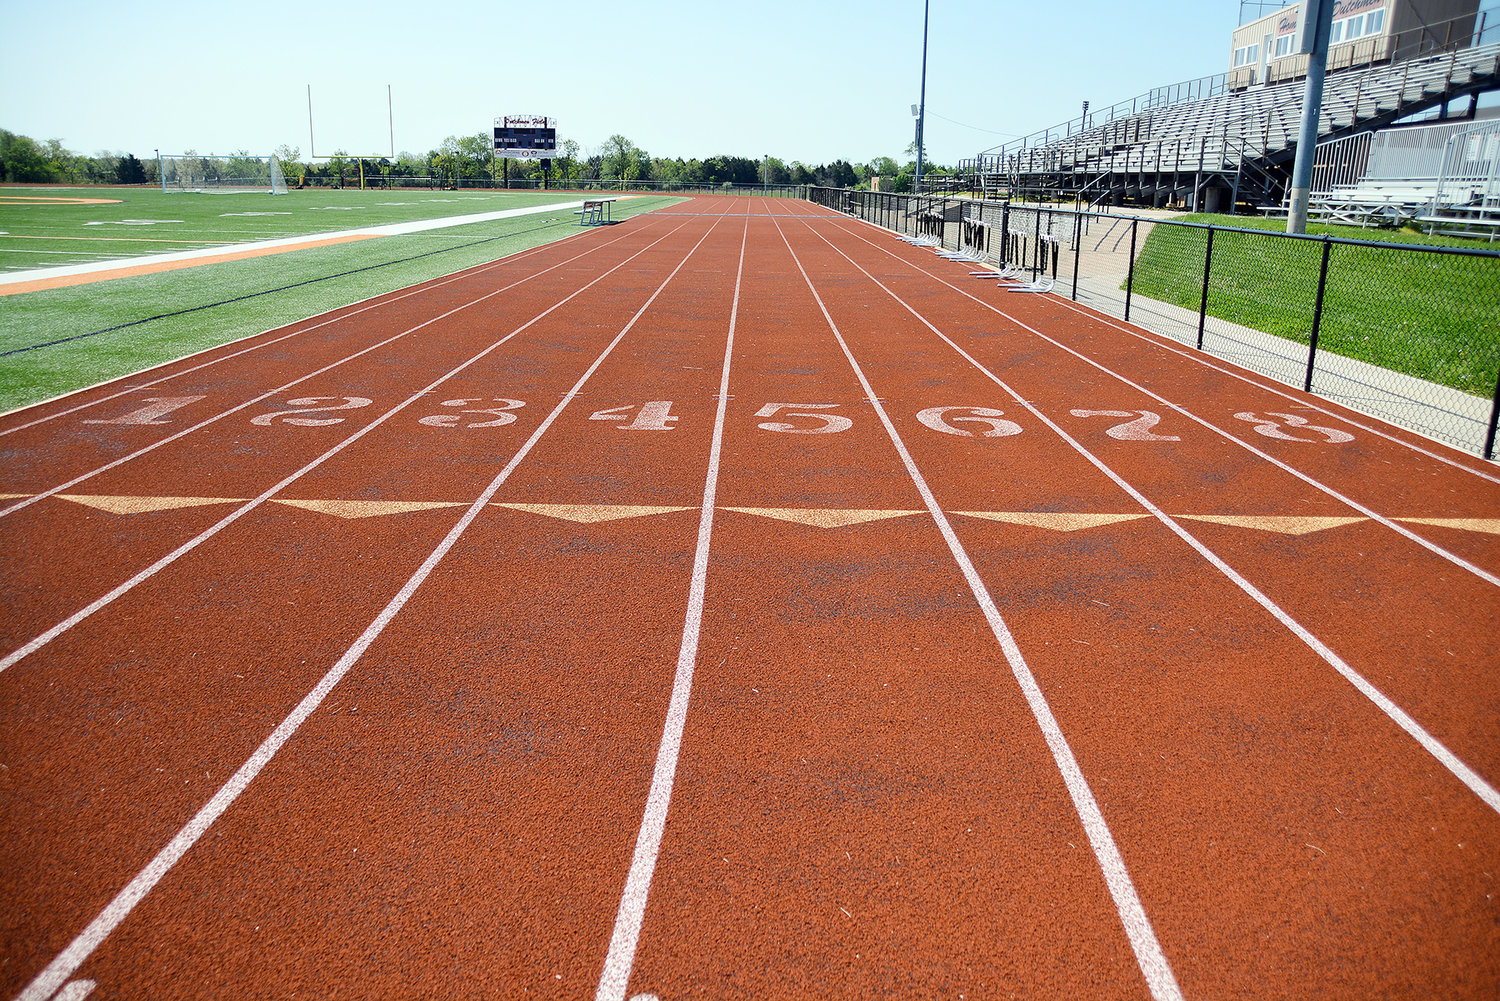 Black spots and fading numbers (above) are two of a number of indicators that it is time for the track at Owensville High School's Dutchmen Field to be resurfaced. In the above photograph taken Tuesday morning, there are several spots on the track where black is showing